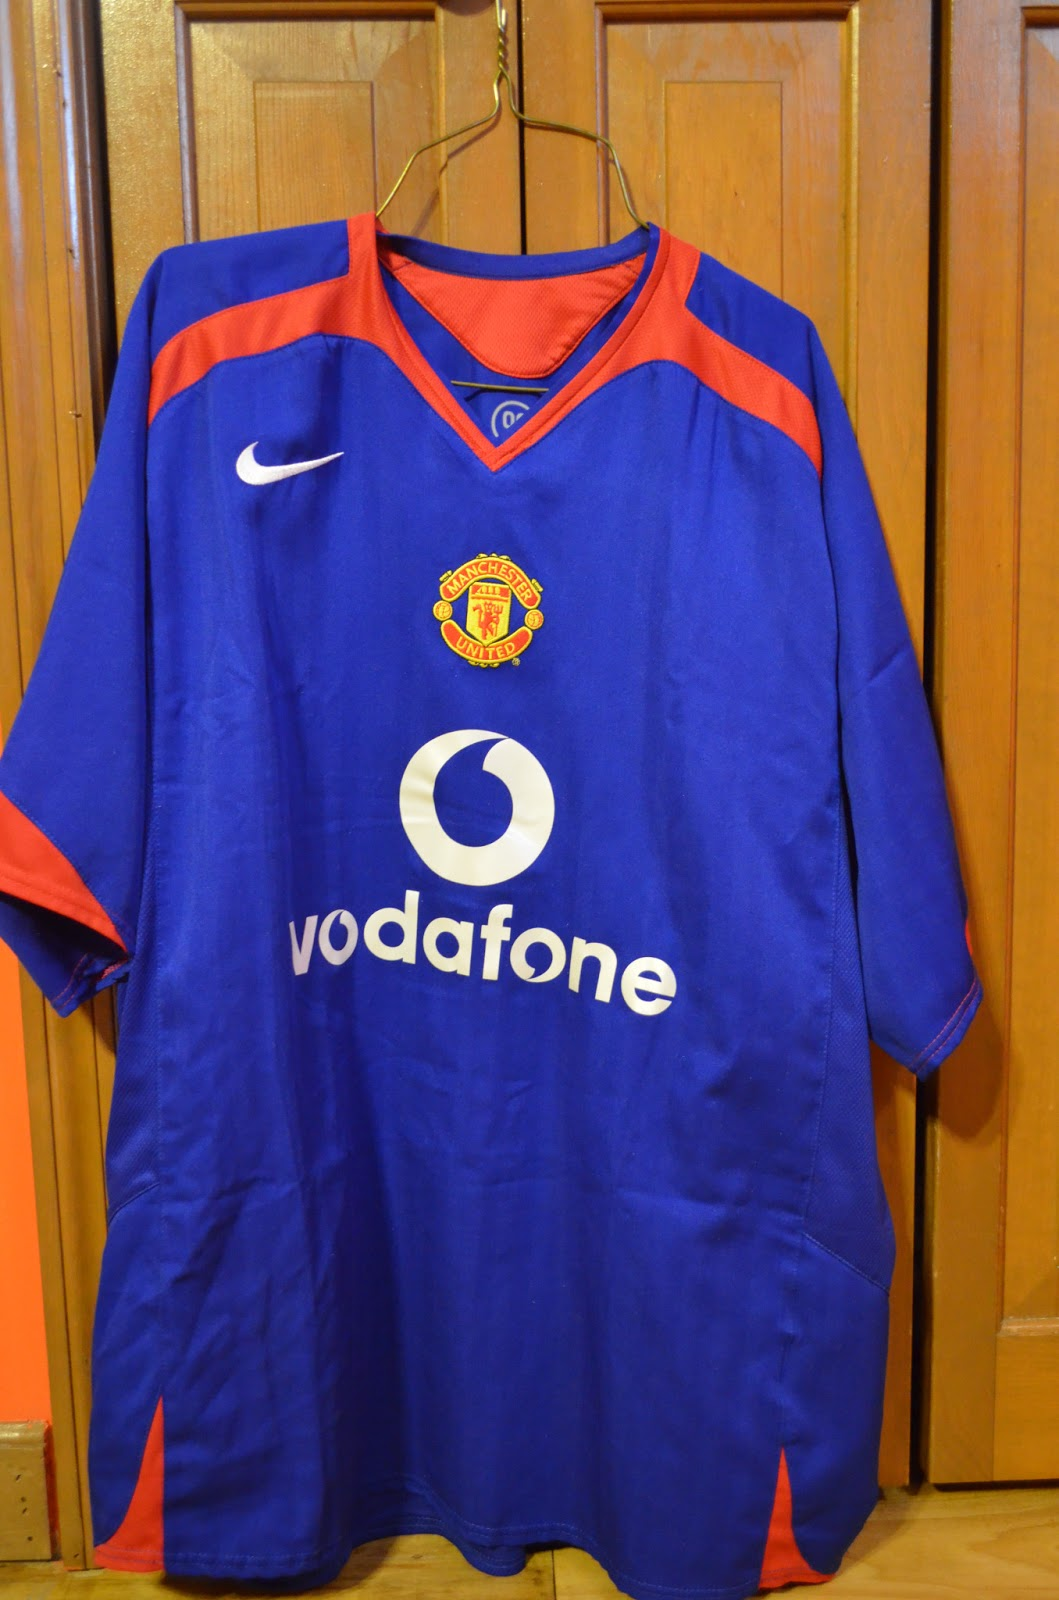 on sale c6d5f b5498 Kit Collection - My Soccer Jersey Collection: Manchester ...